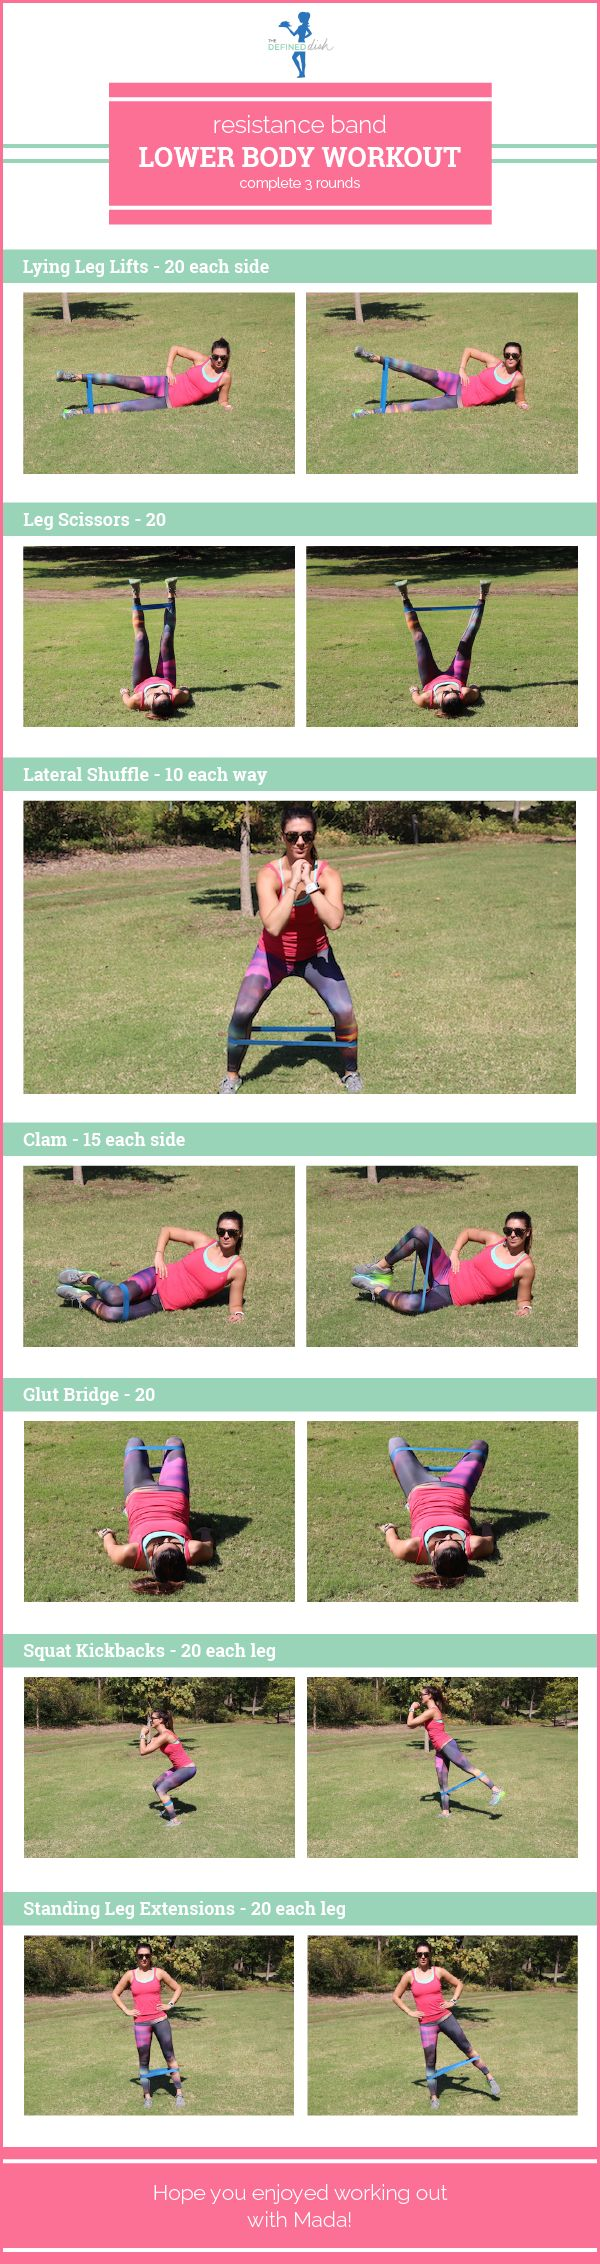 Resistance Band Lower Body Workout   The Defined Dish Sports & Outdoors - Sports & Fitness - Yoga Equipment - Clothing - Women - Pants - yoga fitness - http://amzn.to/2k0et0A